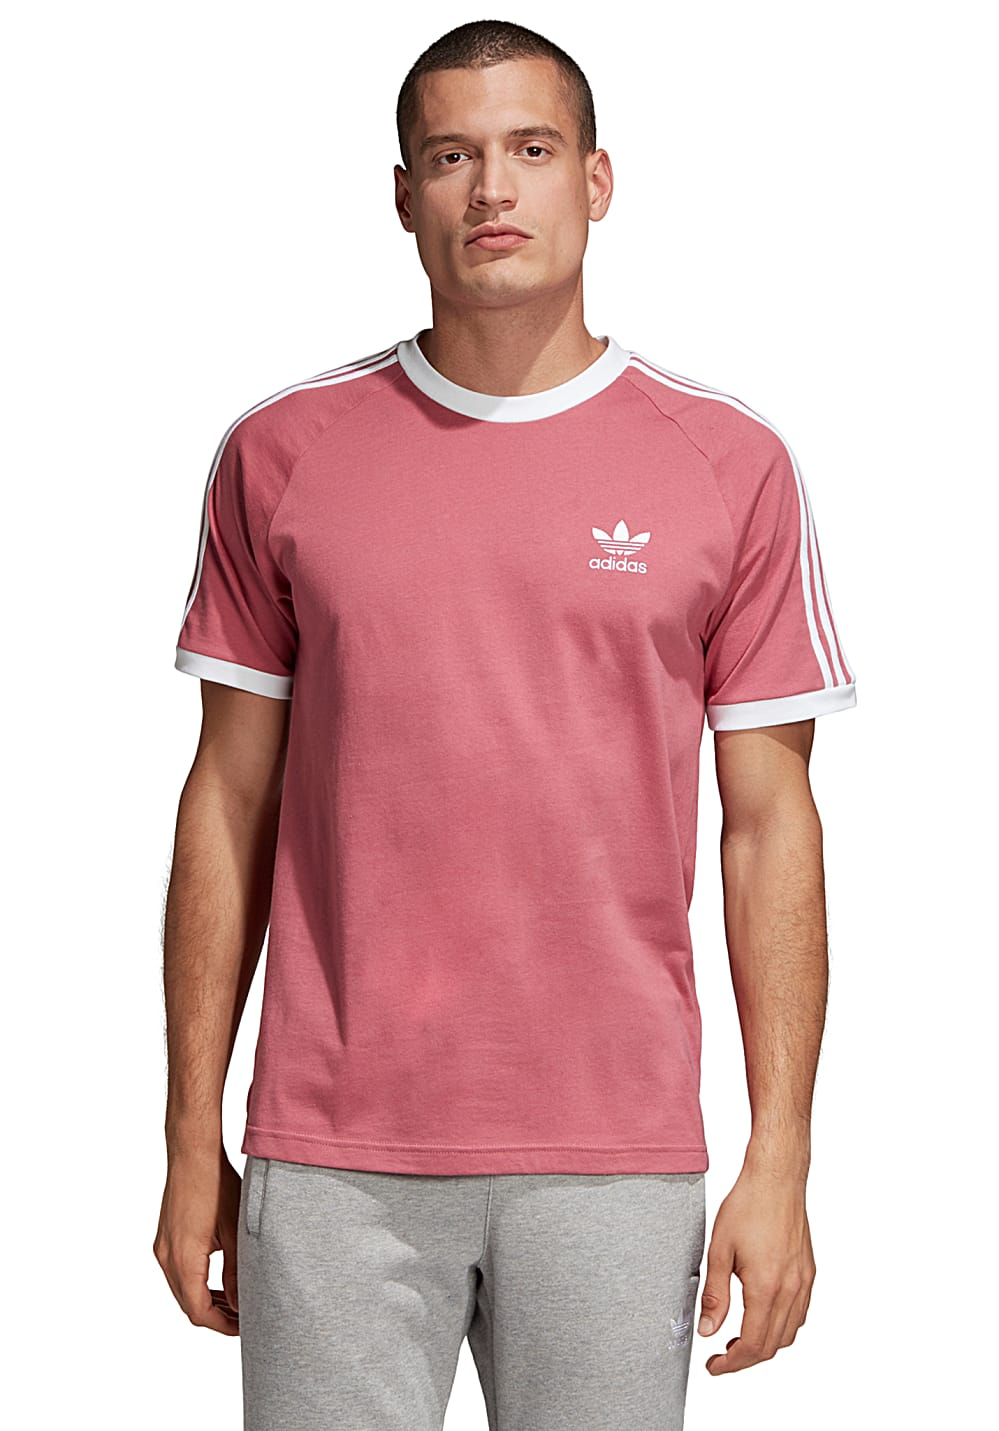 ADIDAS ORIGINALS 3-Stripes - T-shirt voor Heren - Rood